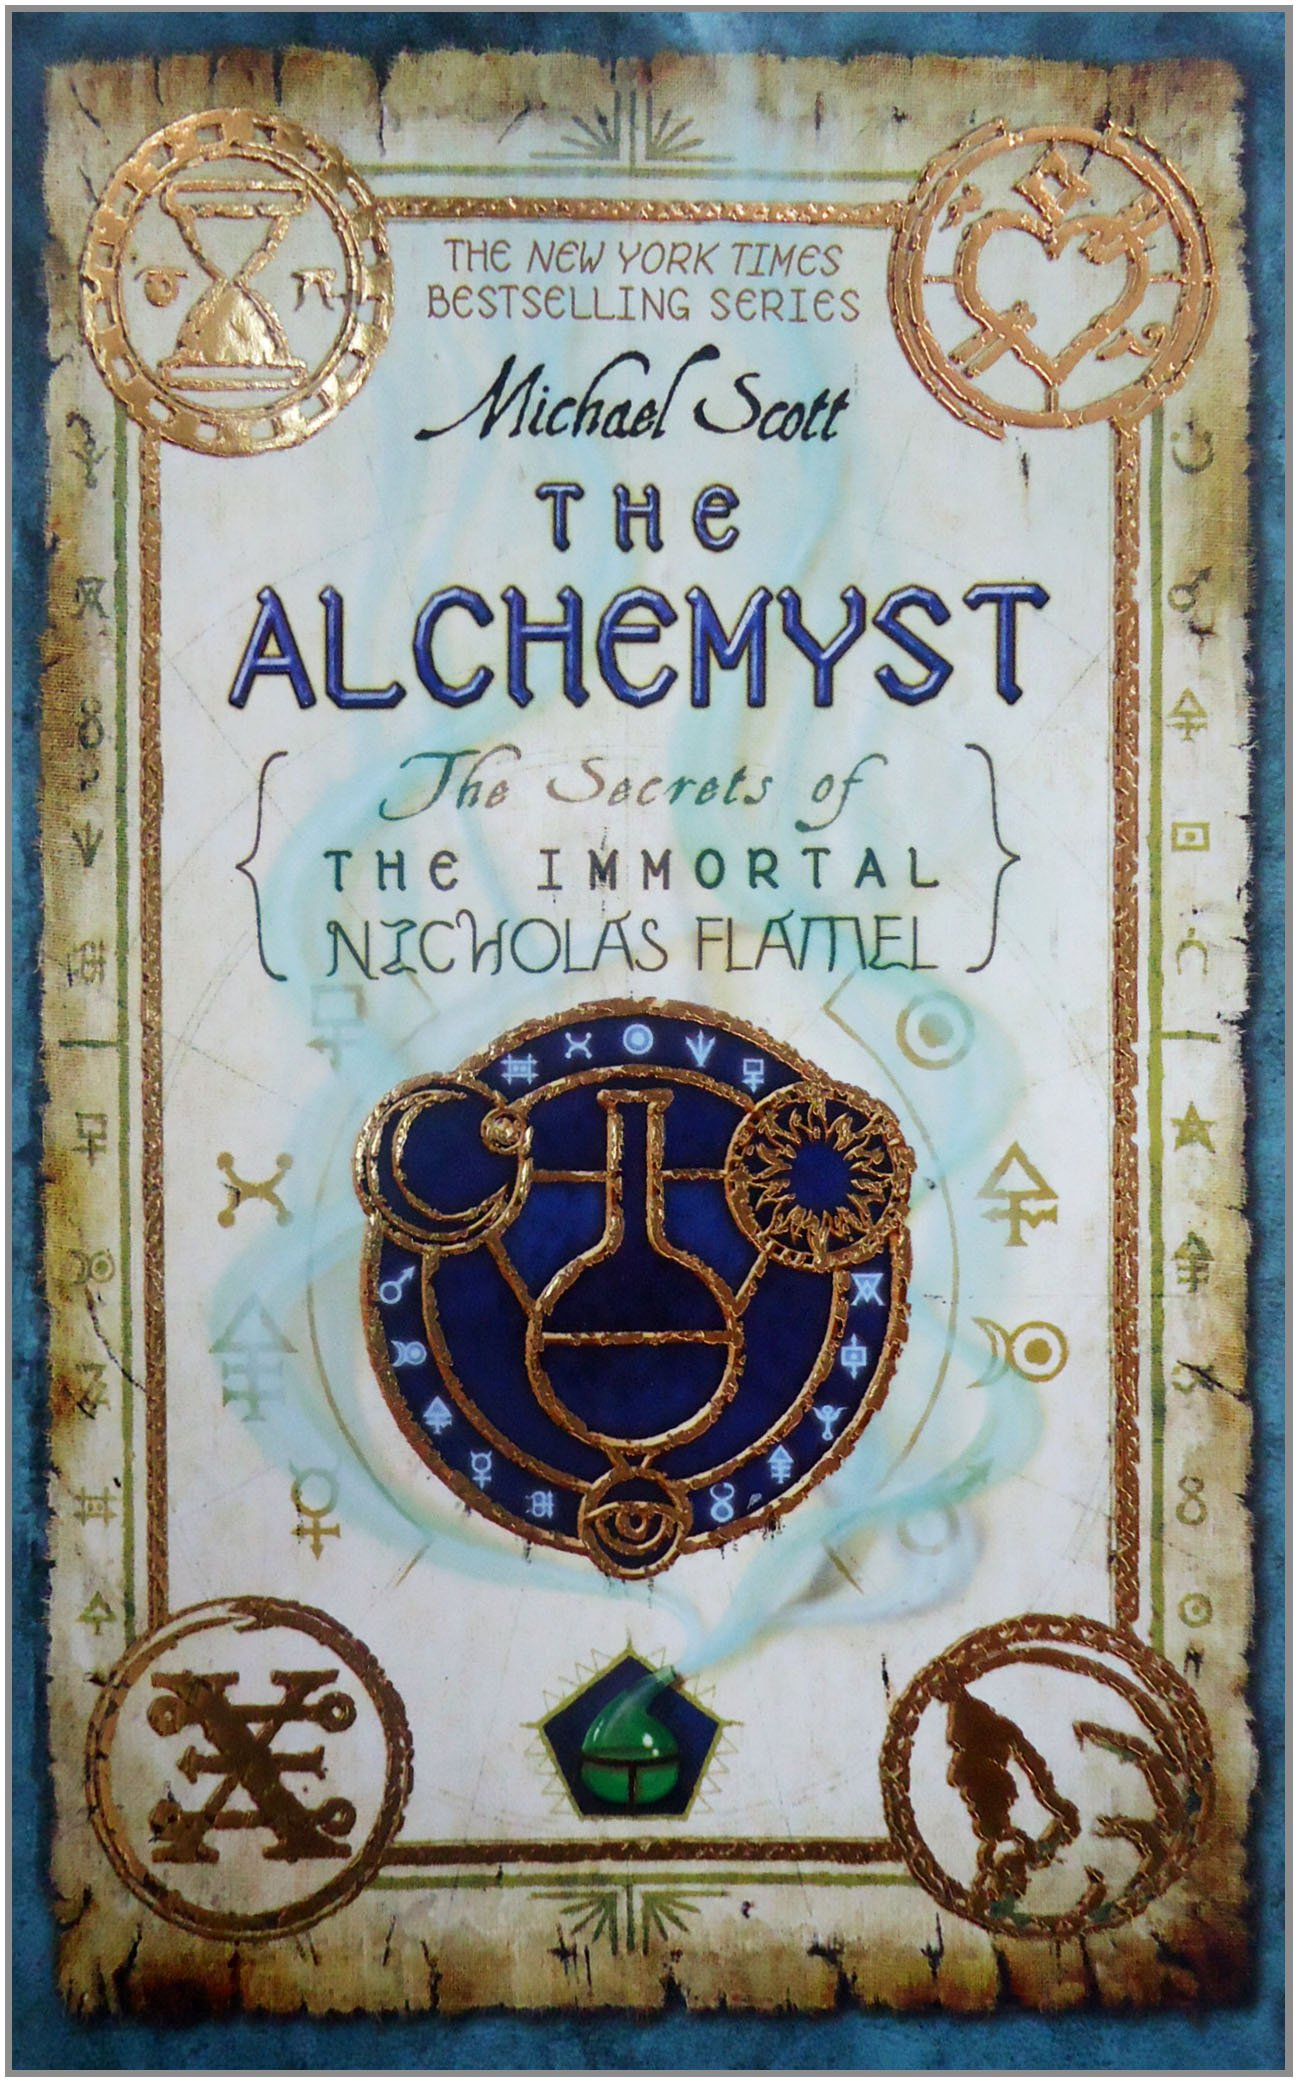 the alchemist story review atelier rorona plus the alchemist of  com the alchemyst the secrets of the immortal nicholas com the alchemyst the secrets of the an excerpt from the alchemist love your story